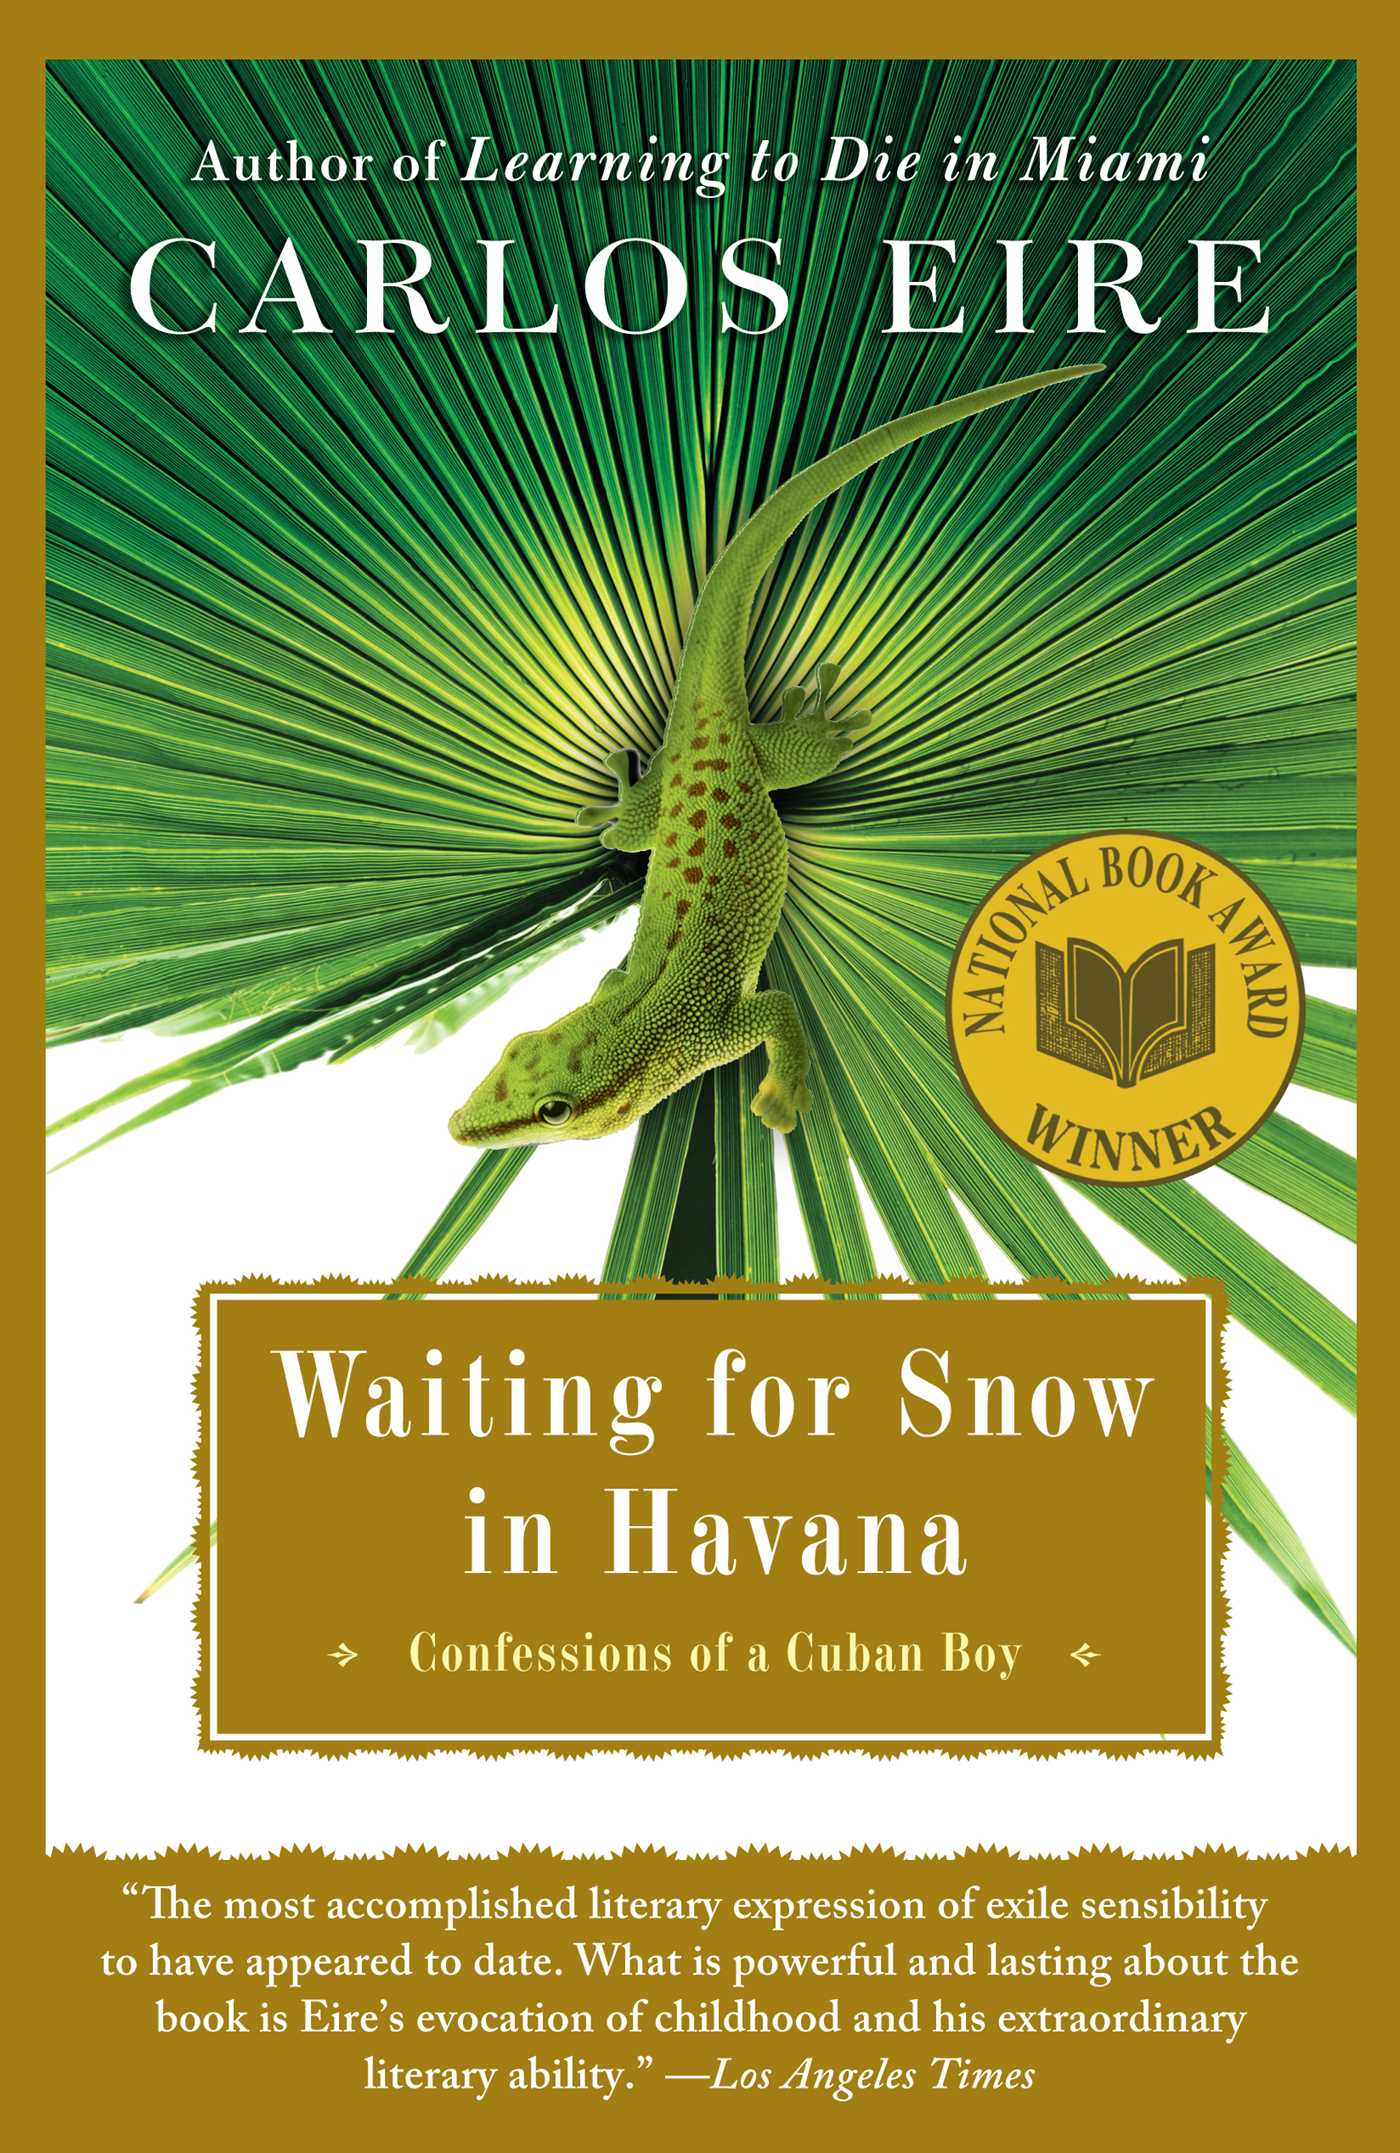 Waiting-for-snow-in-havana-9780743245708_hr